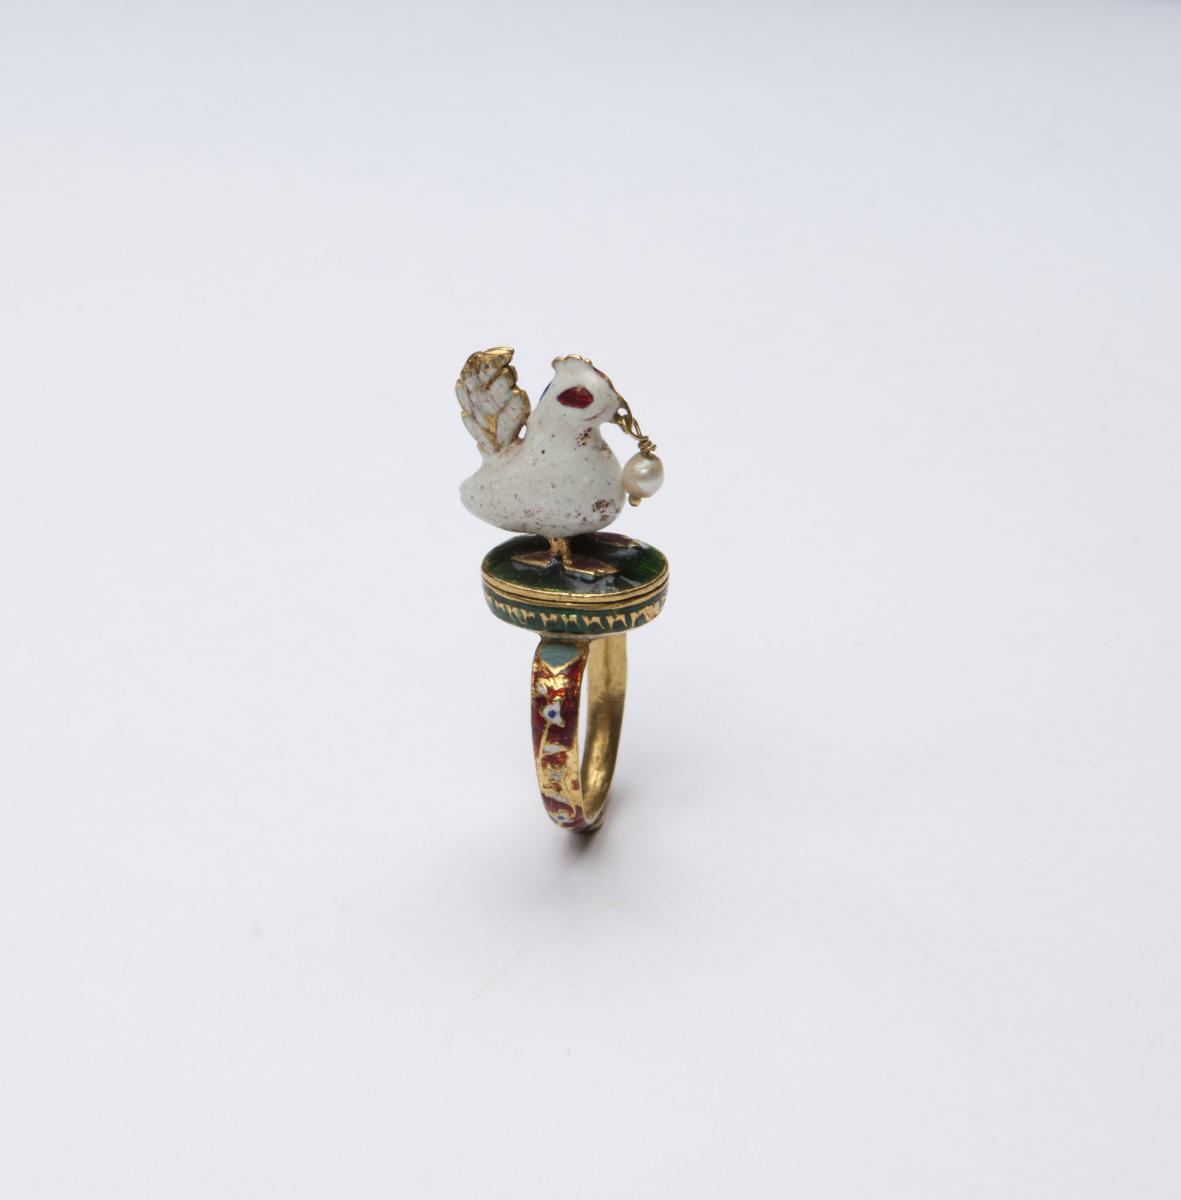 An Enamelled Ring of A Rooster, Mughal India 17 - 18th Century